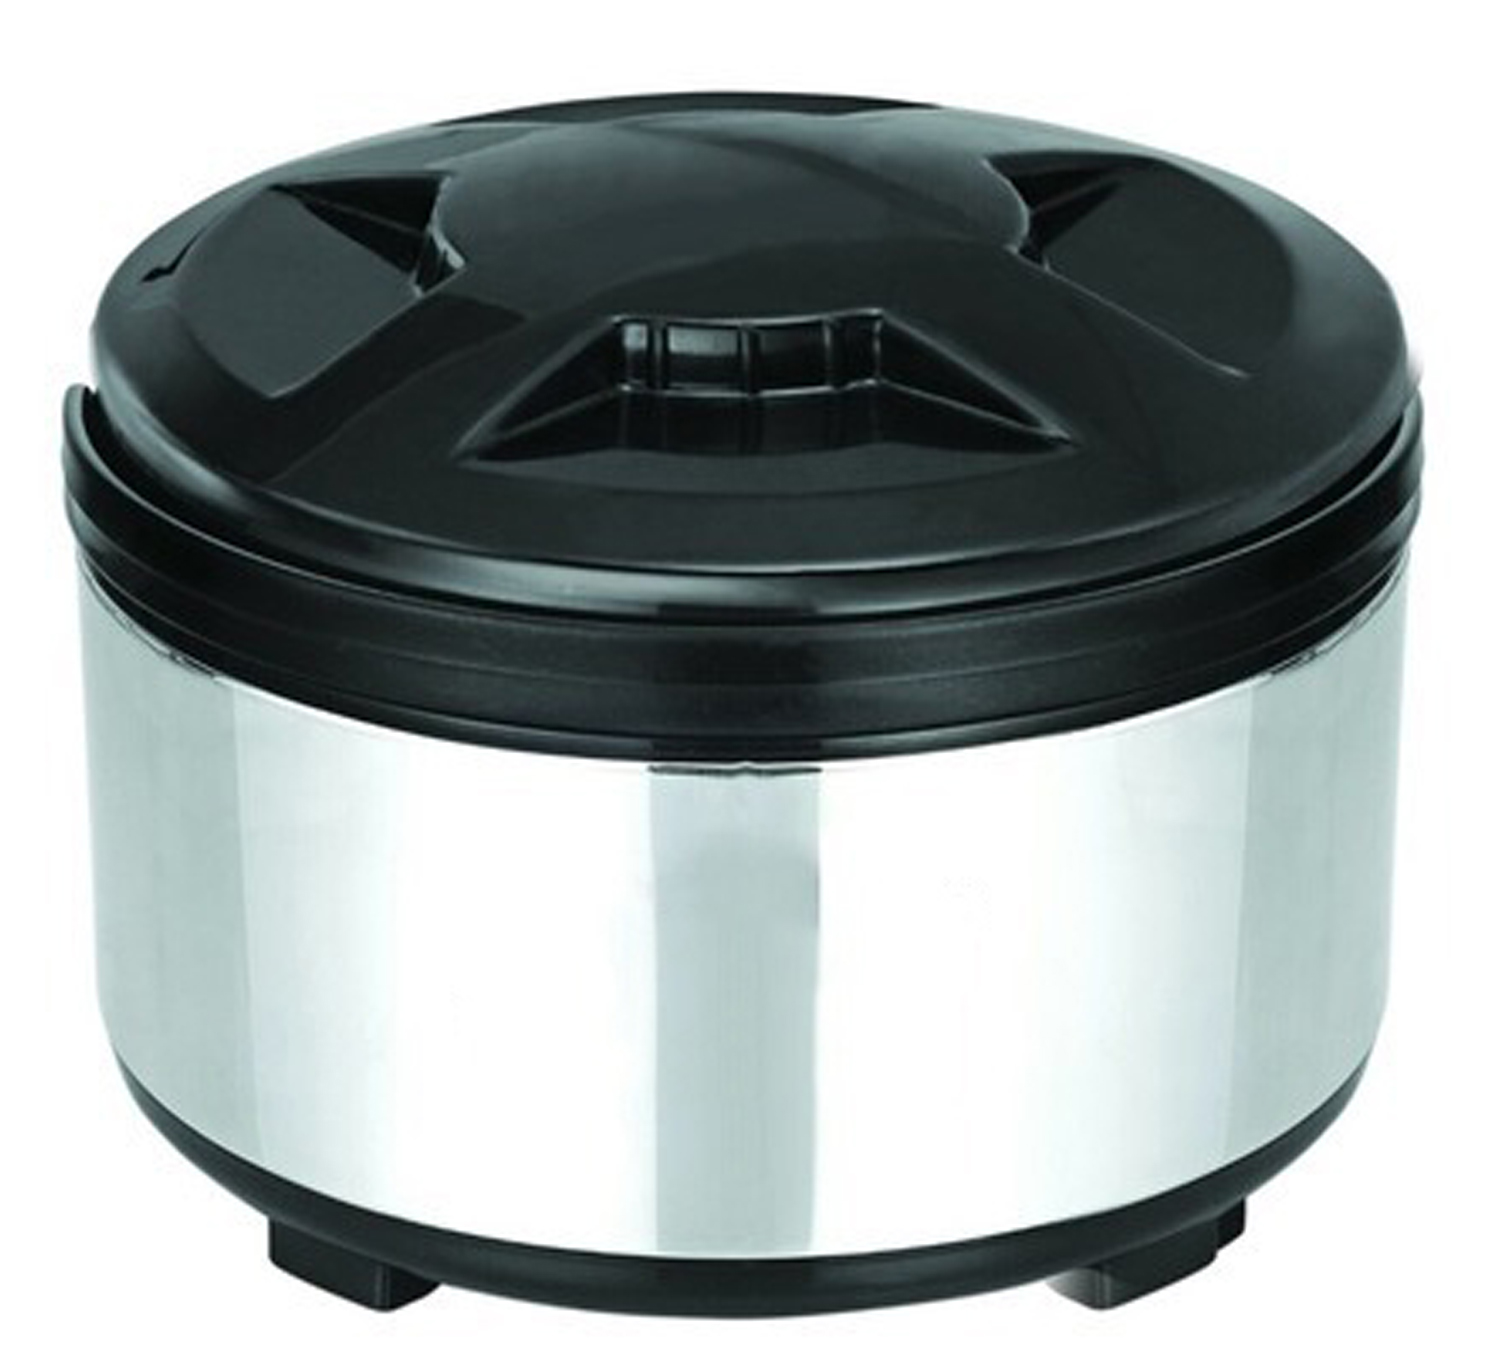 Kuber Industries Stainless Steel Insulated Casserole/Hotpot 1800 Ml (Silver & Black)